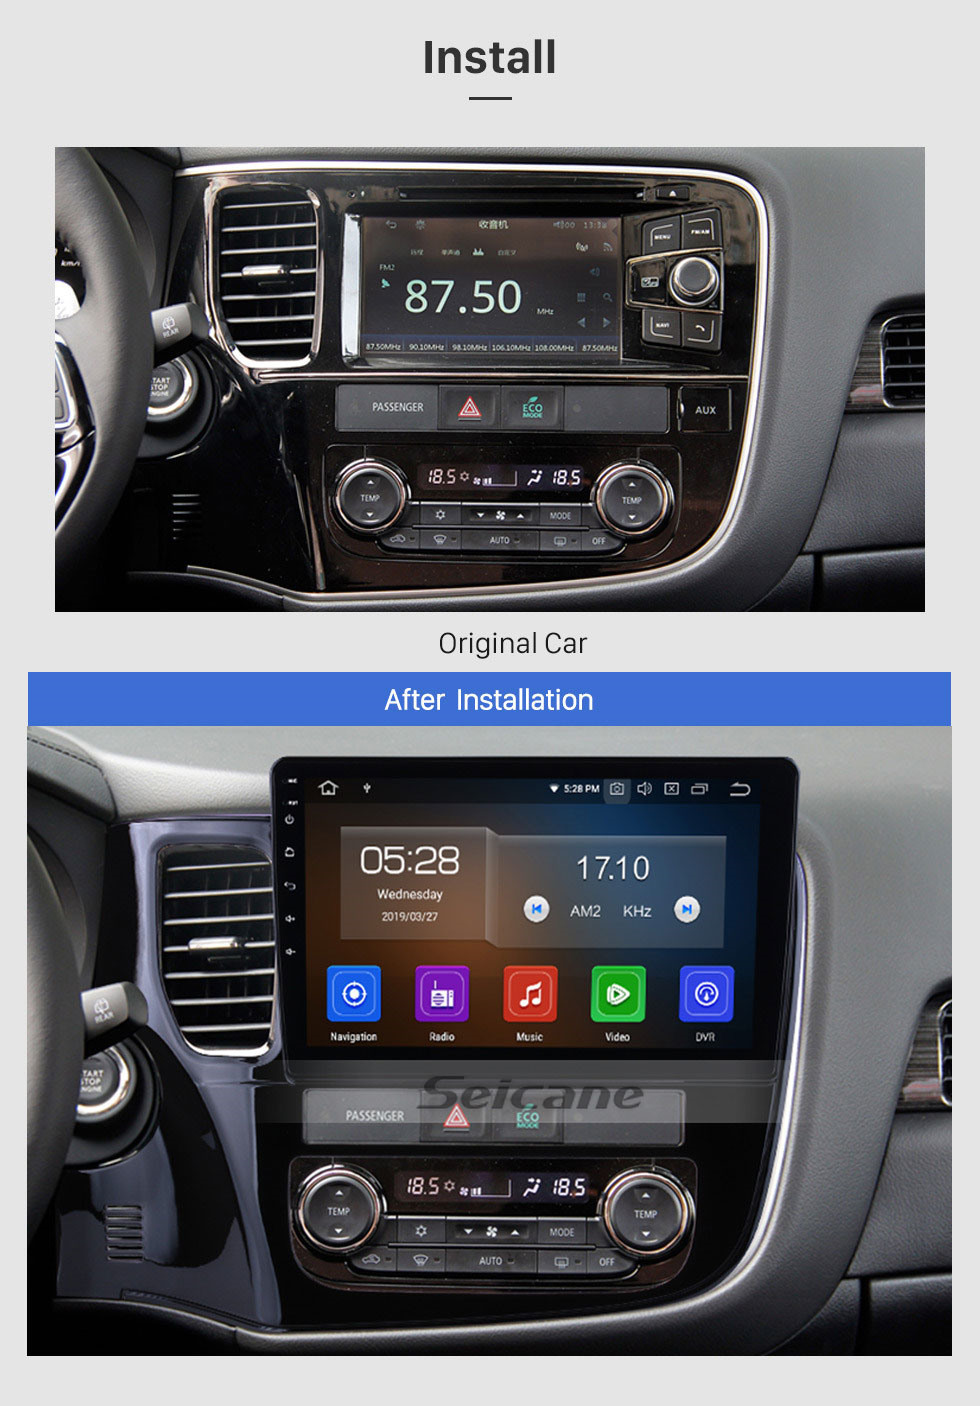 Seicane For 2014 2015 2016 2017 Mitsubishi Outlander 10.1 inch Android 10.0 HD Touchscreen GPS Bluetooth Navigation System Wifi AUX SWC Carplay USB support DVR 1080P Video TPMS